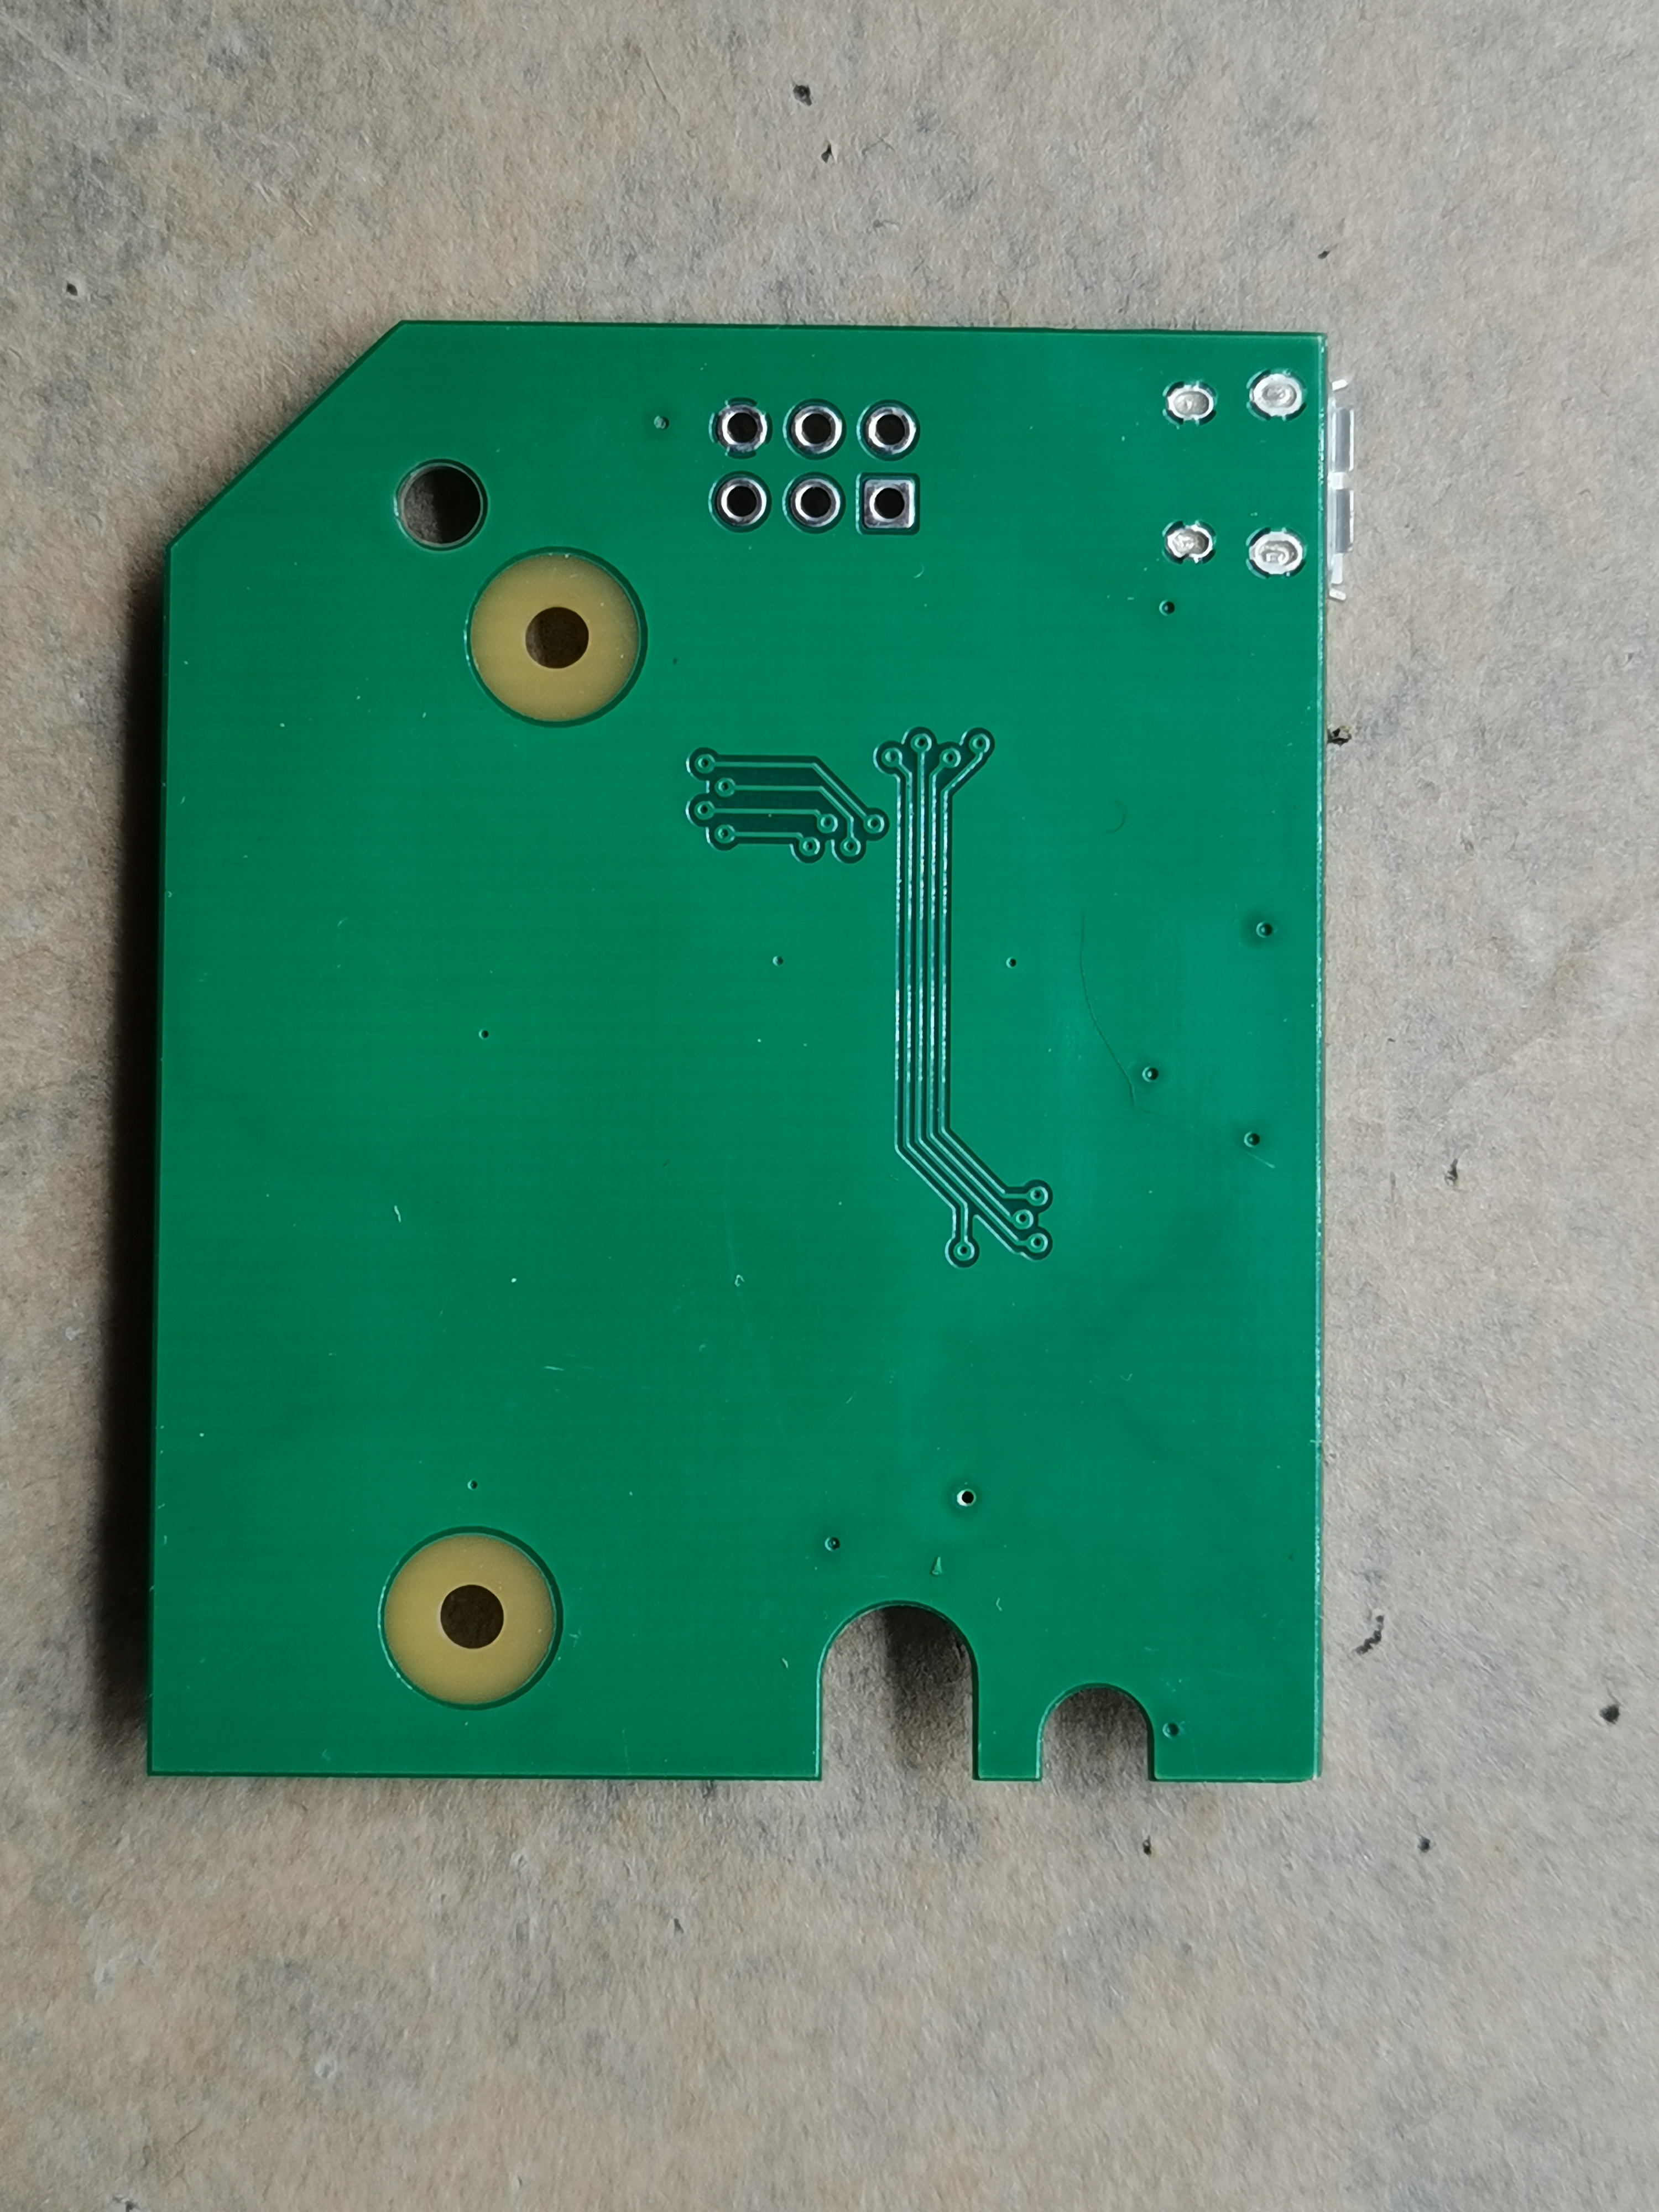 Bottom of assembled board